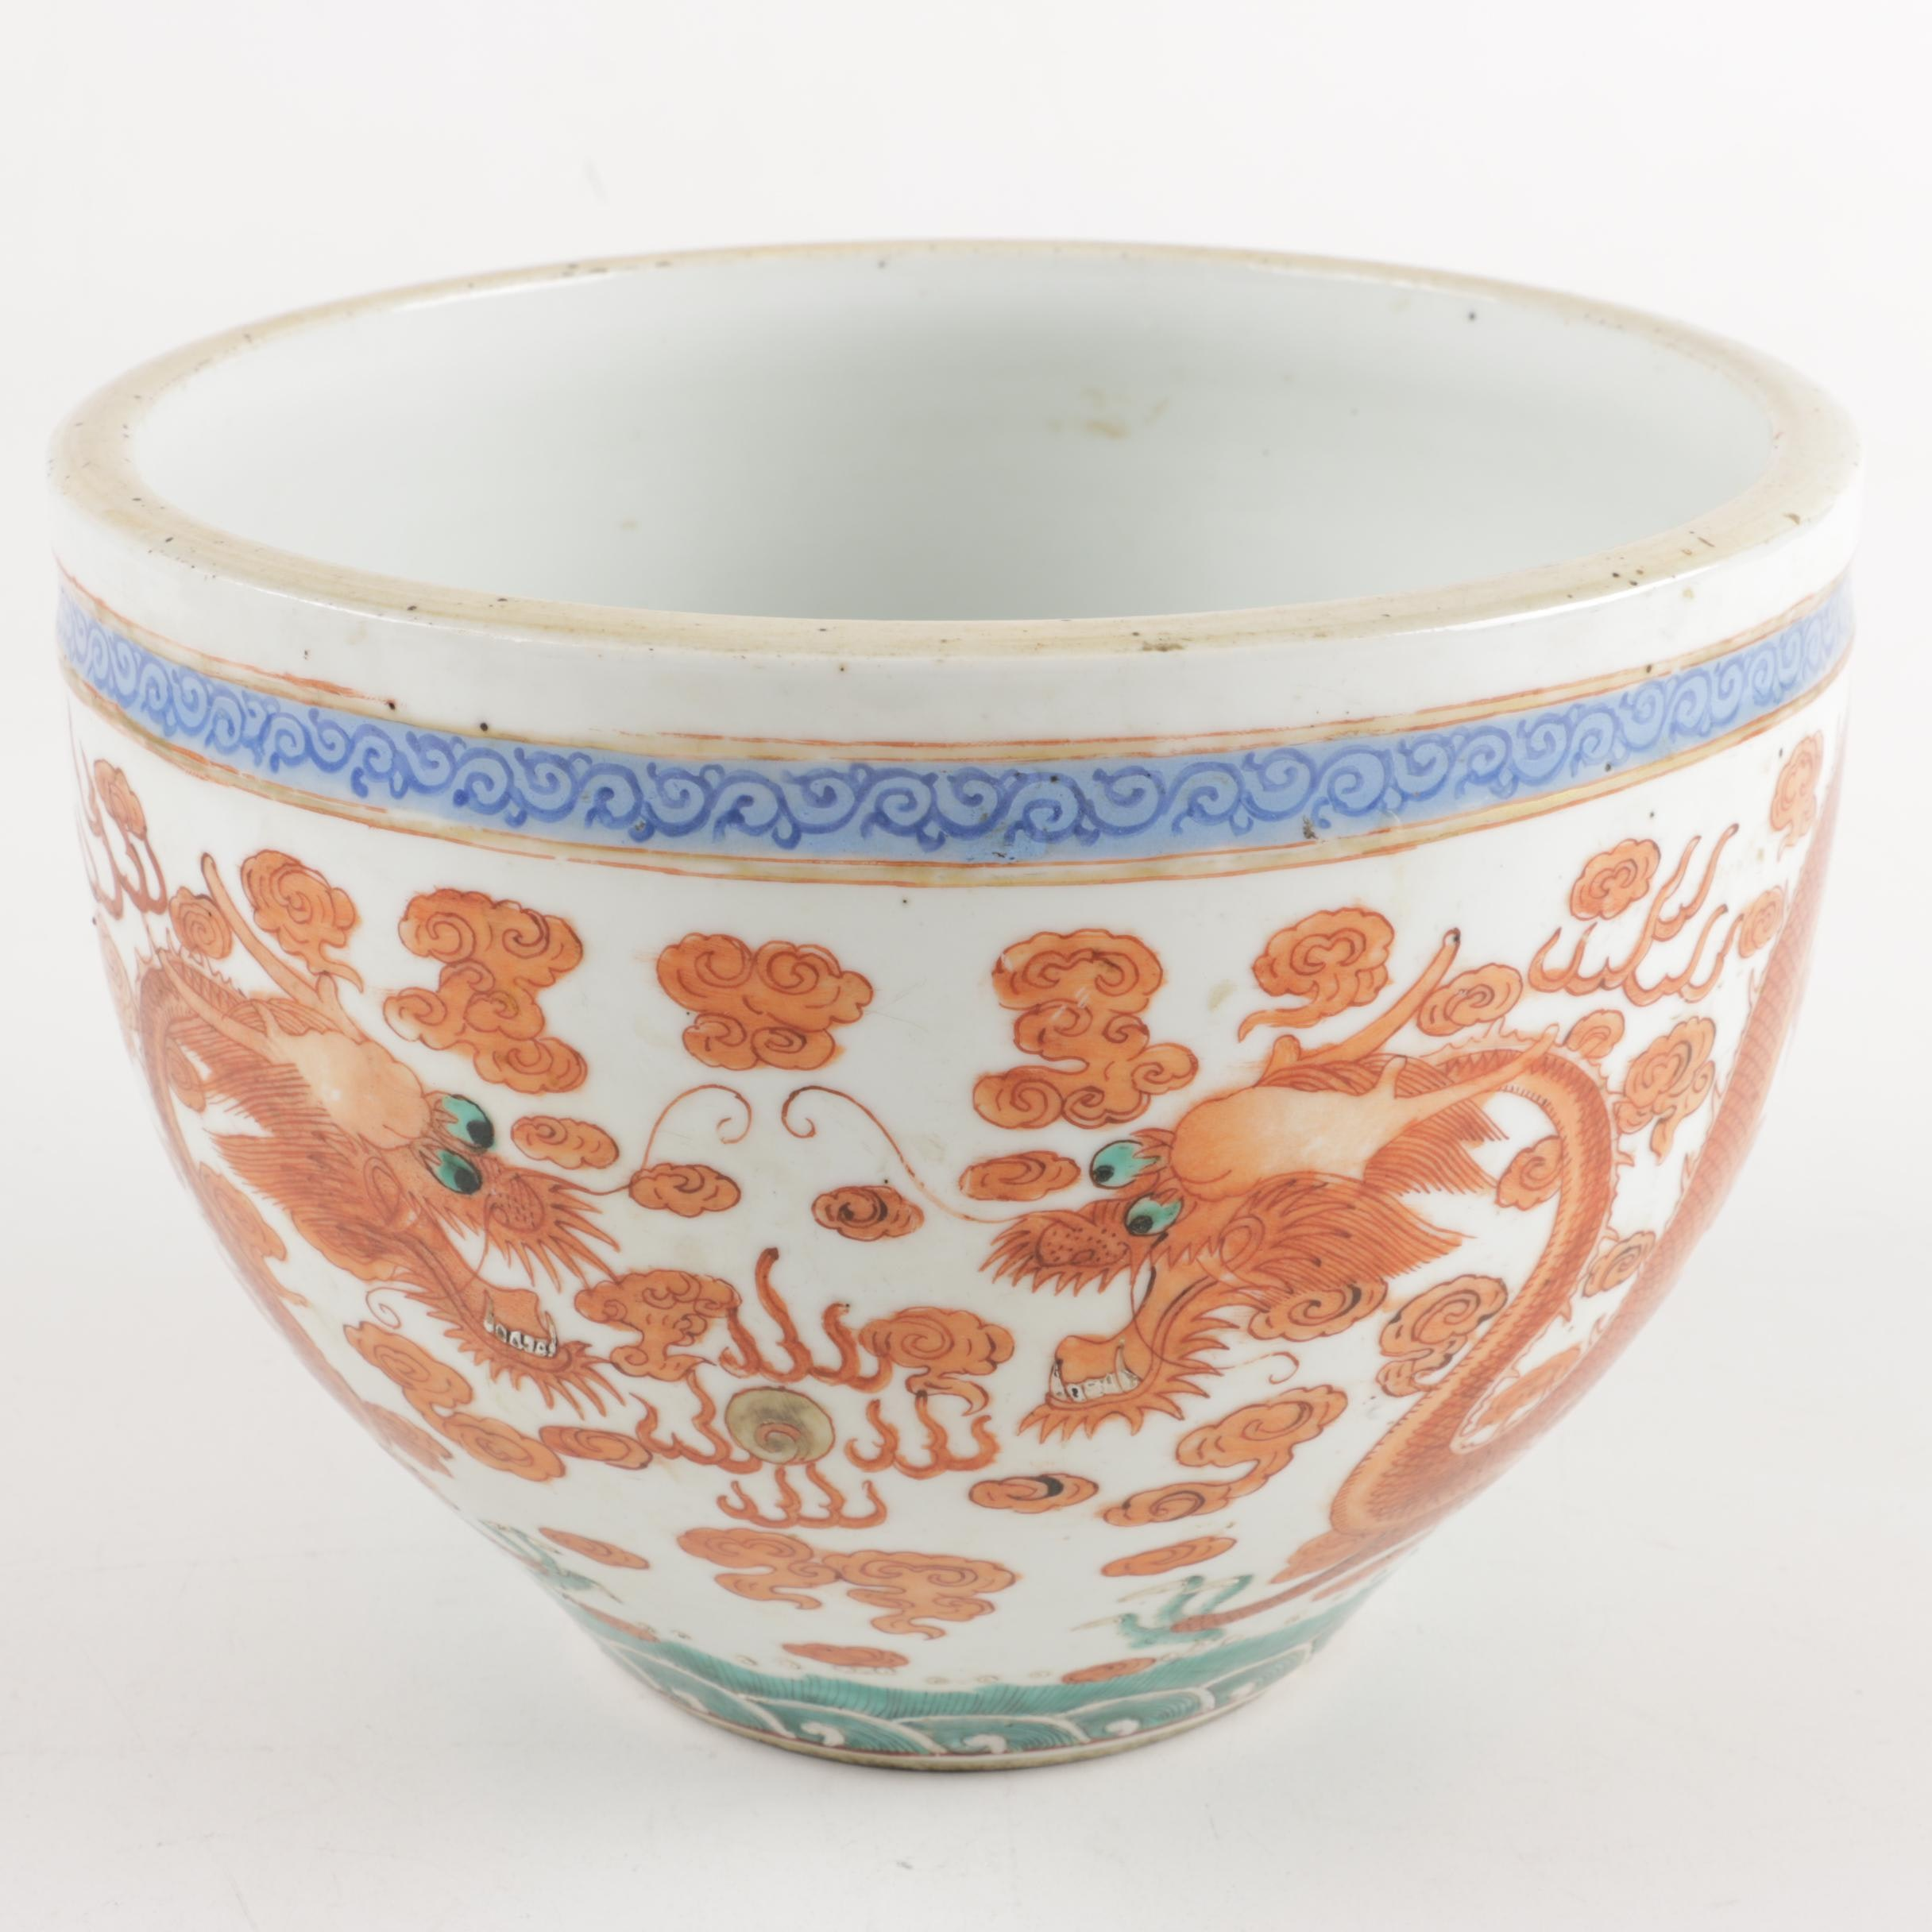 Vintage Asian Ceramic Bowl with a Dragon Motif